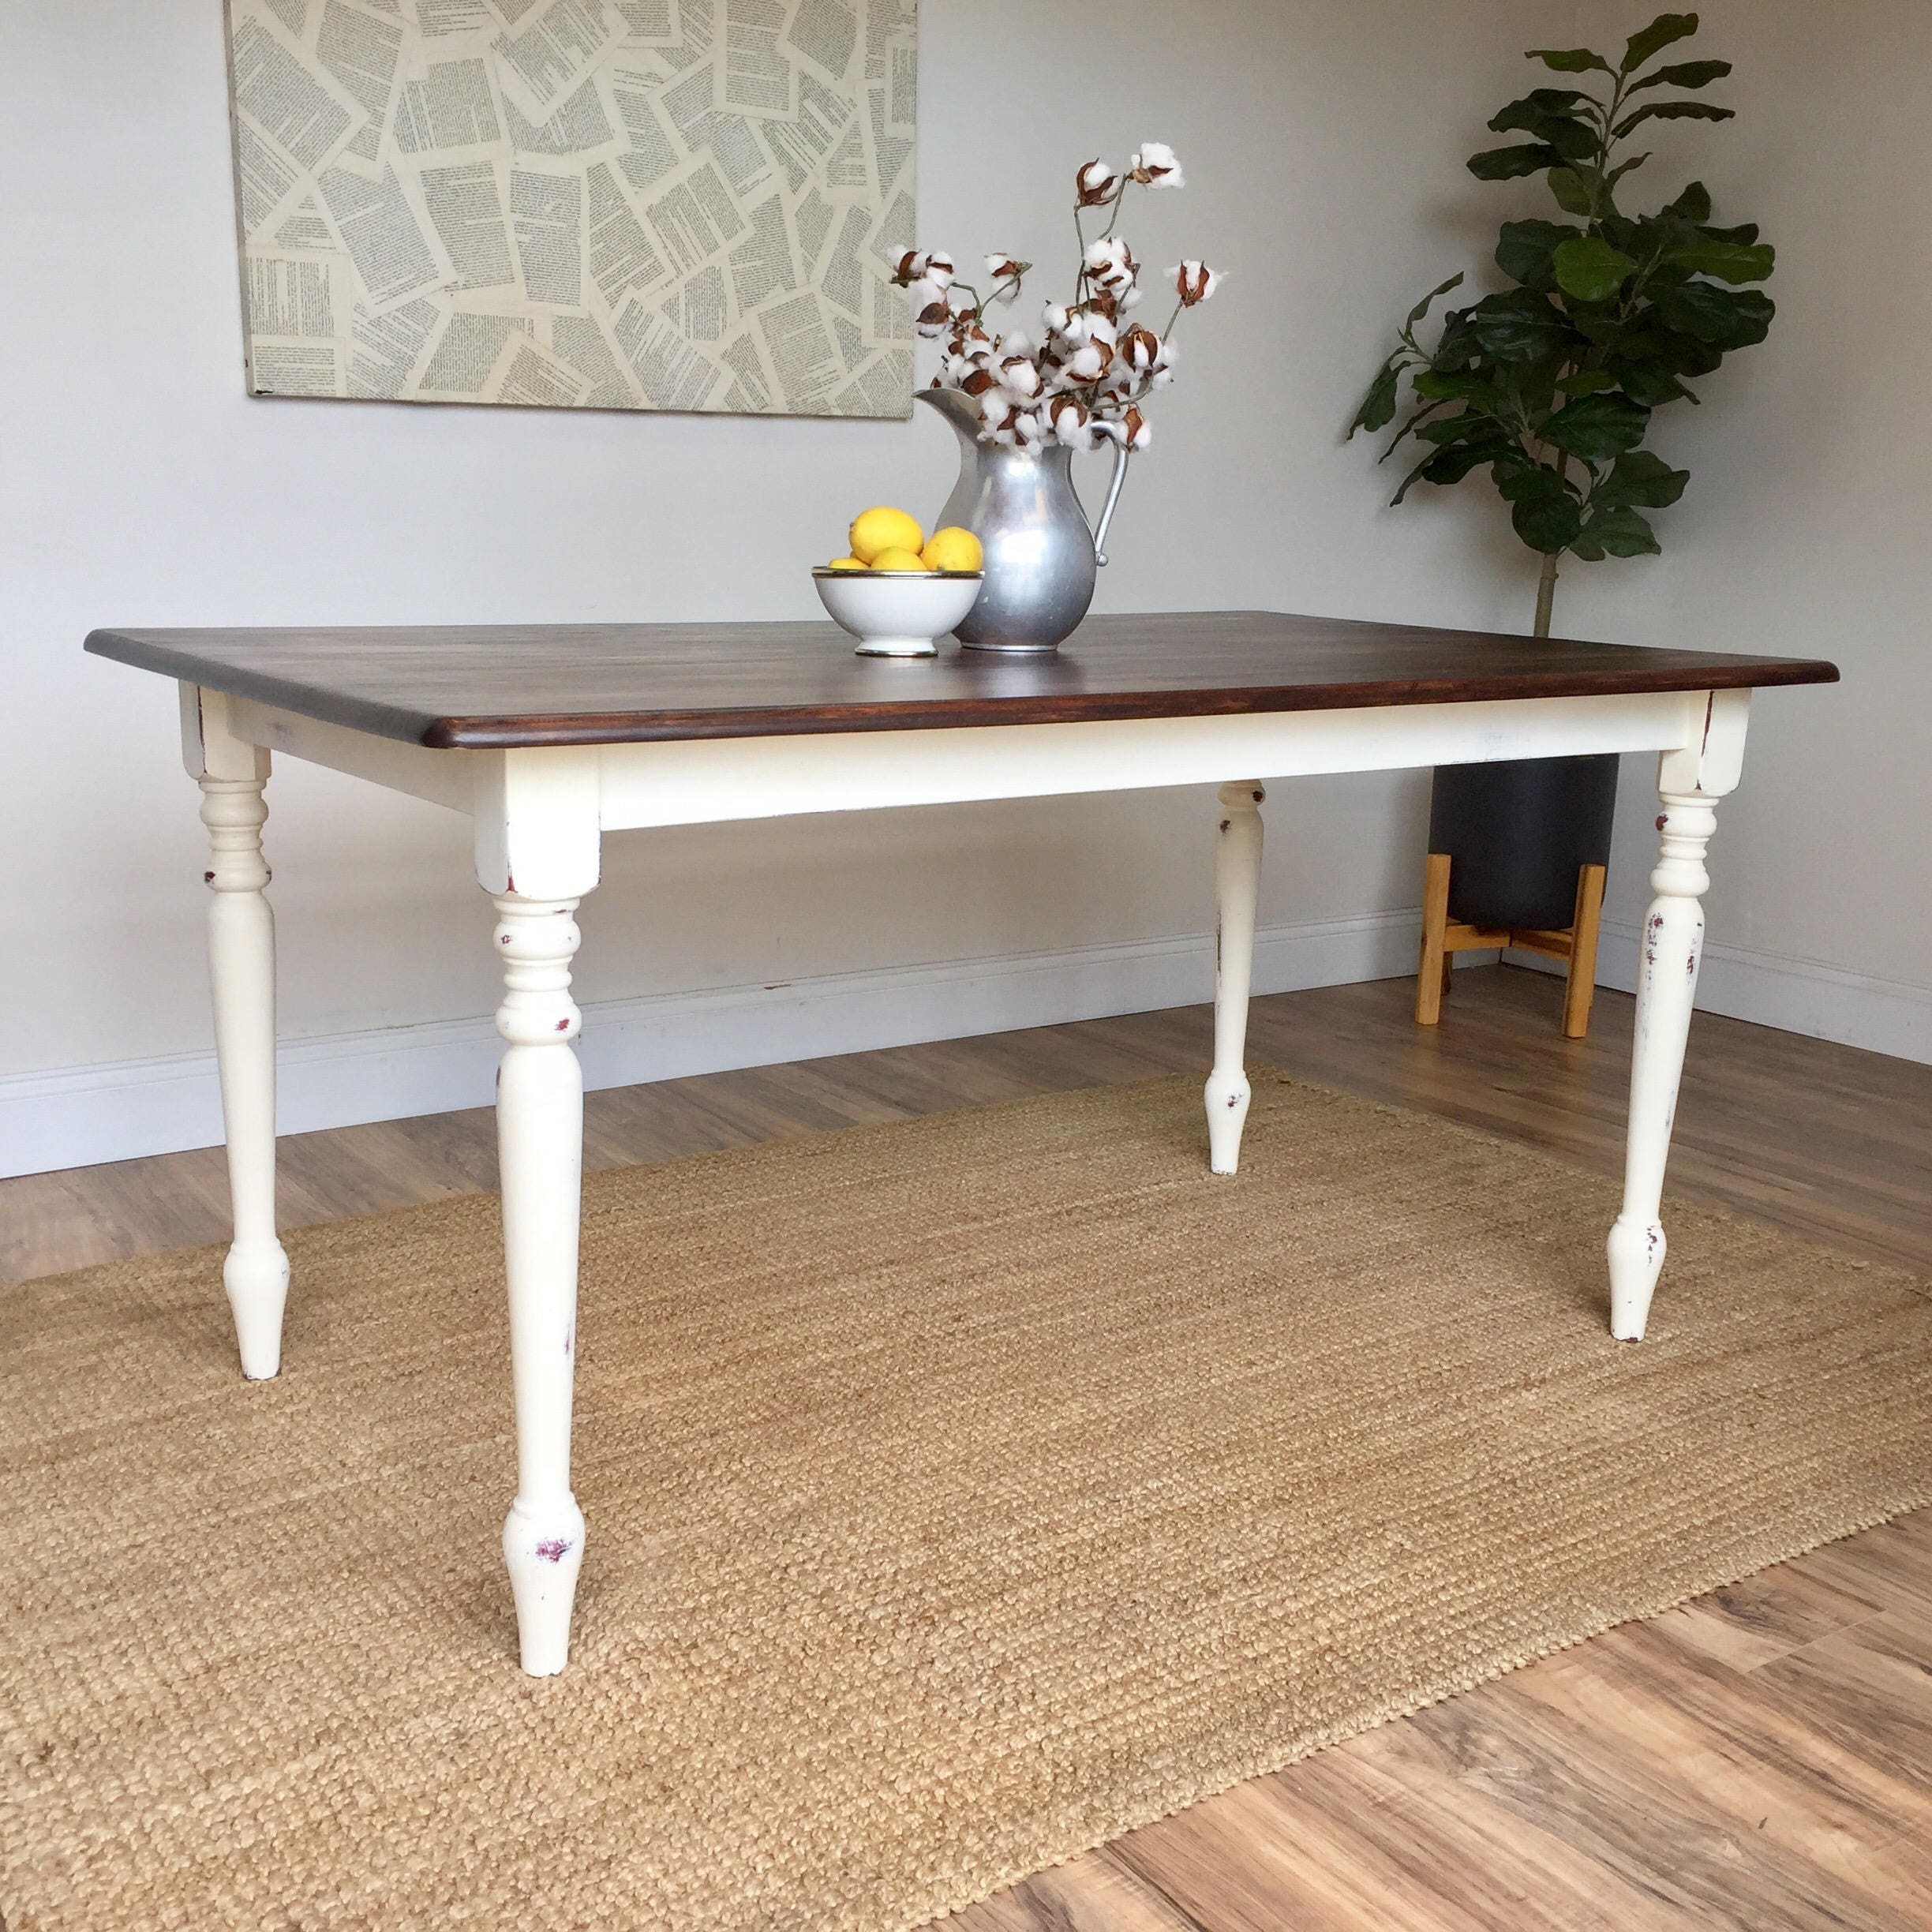 Furnitures Fashion Small Dining Room Furniture Design: Small White Dining Table